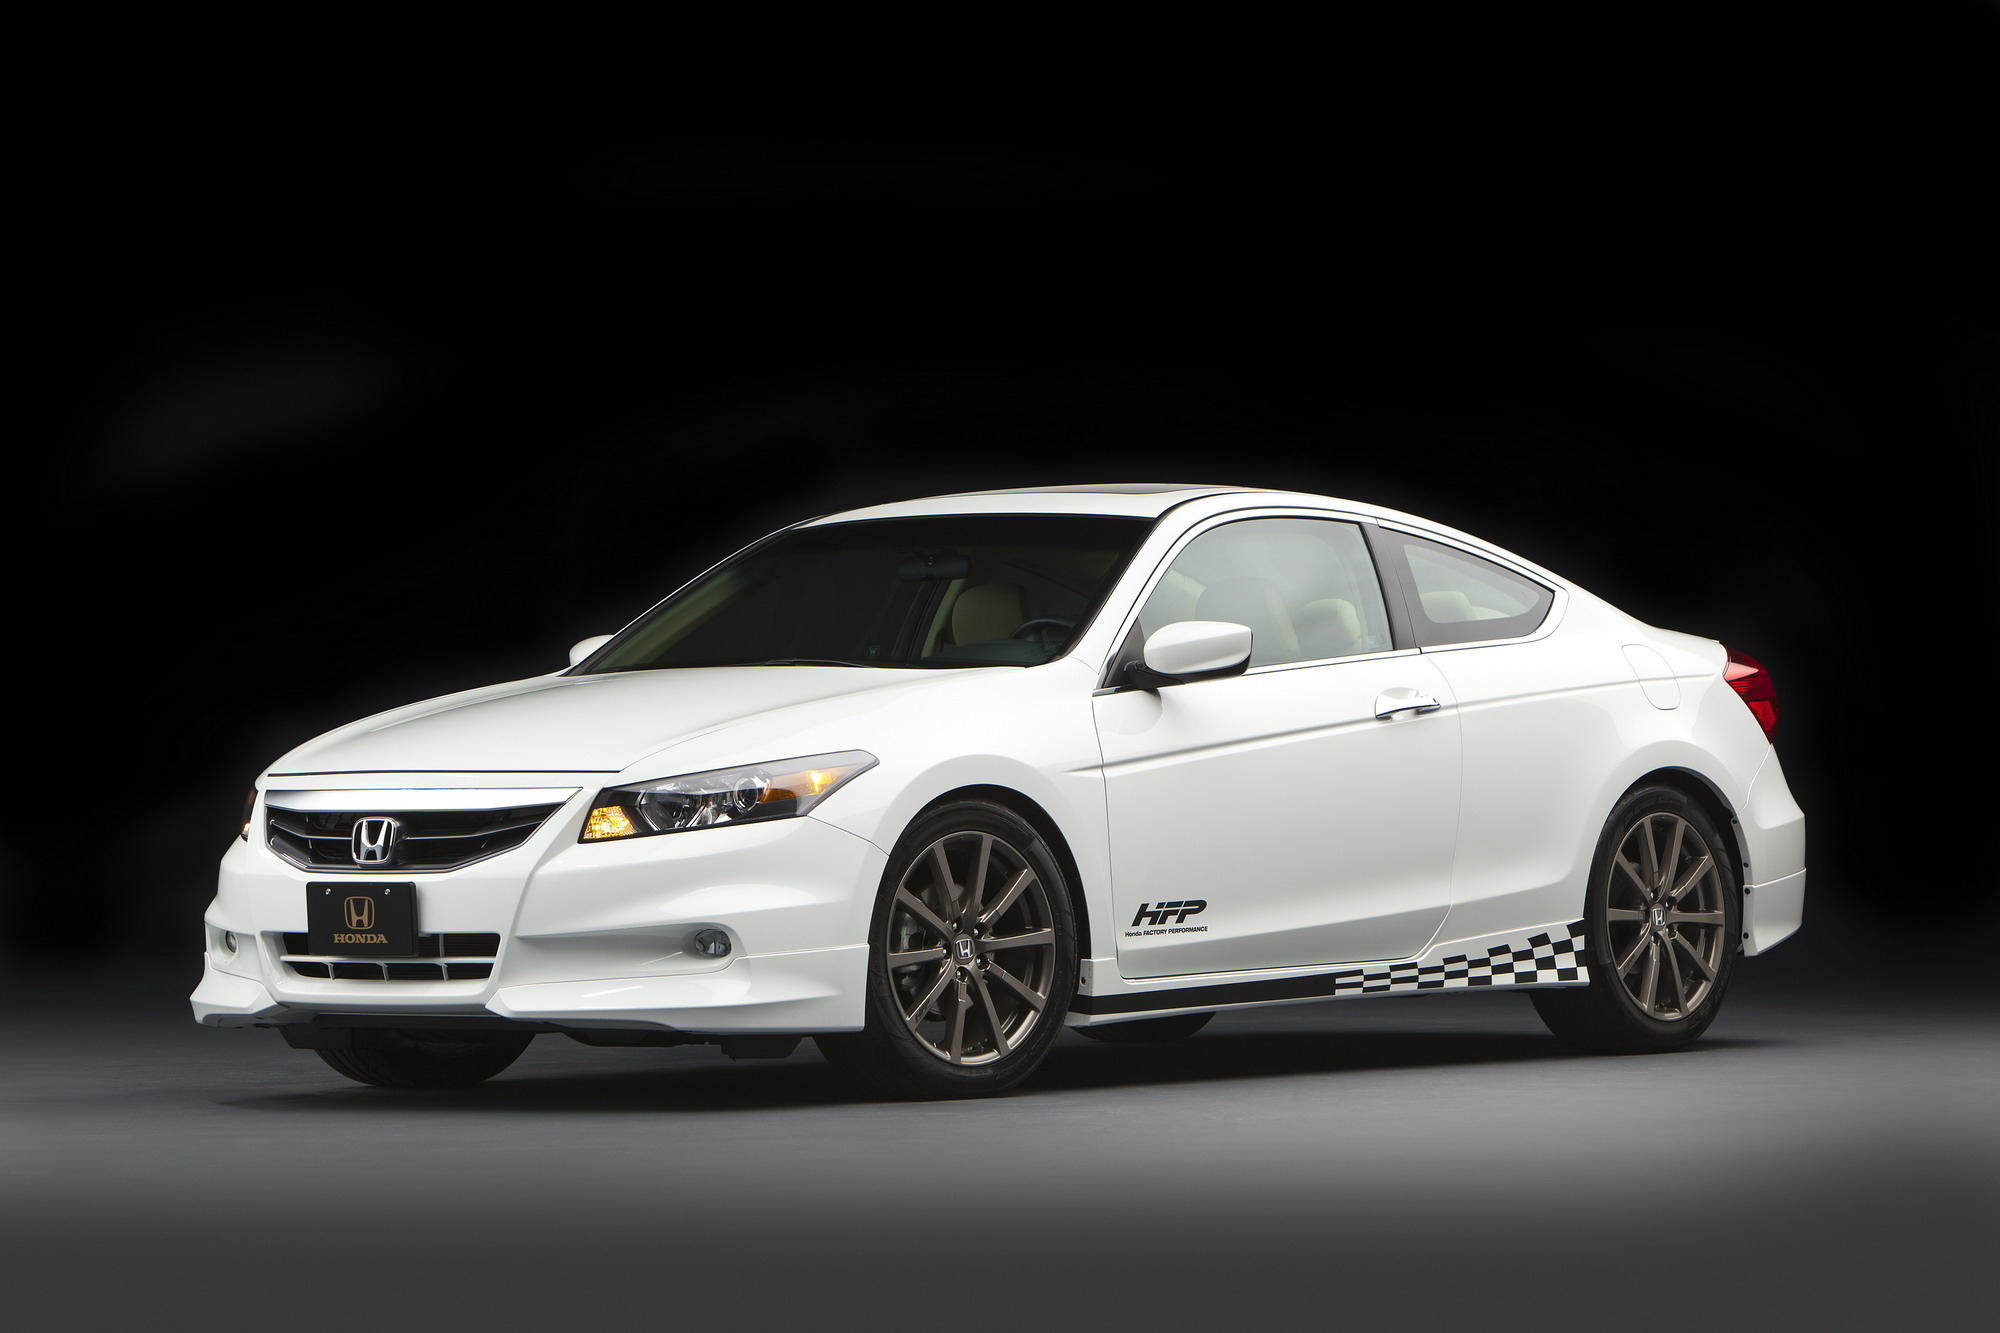 2012 Honda Accord Coupe V6 Concept Pictures Photos